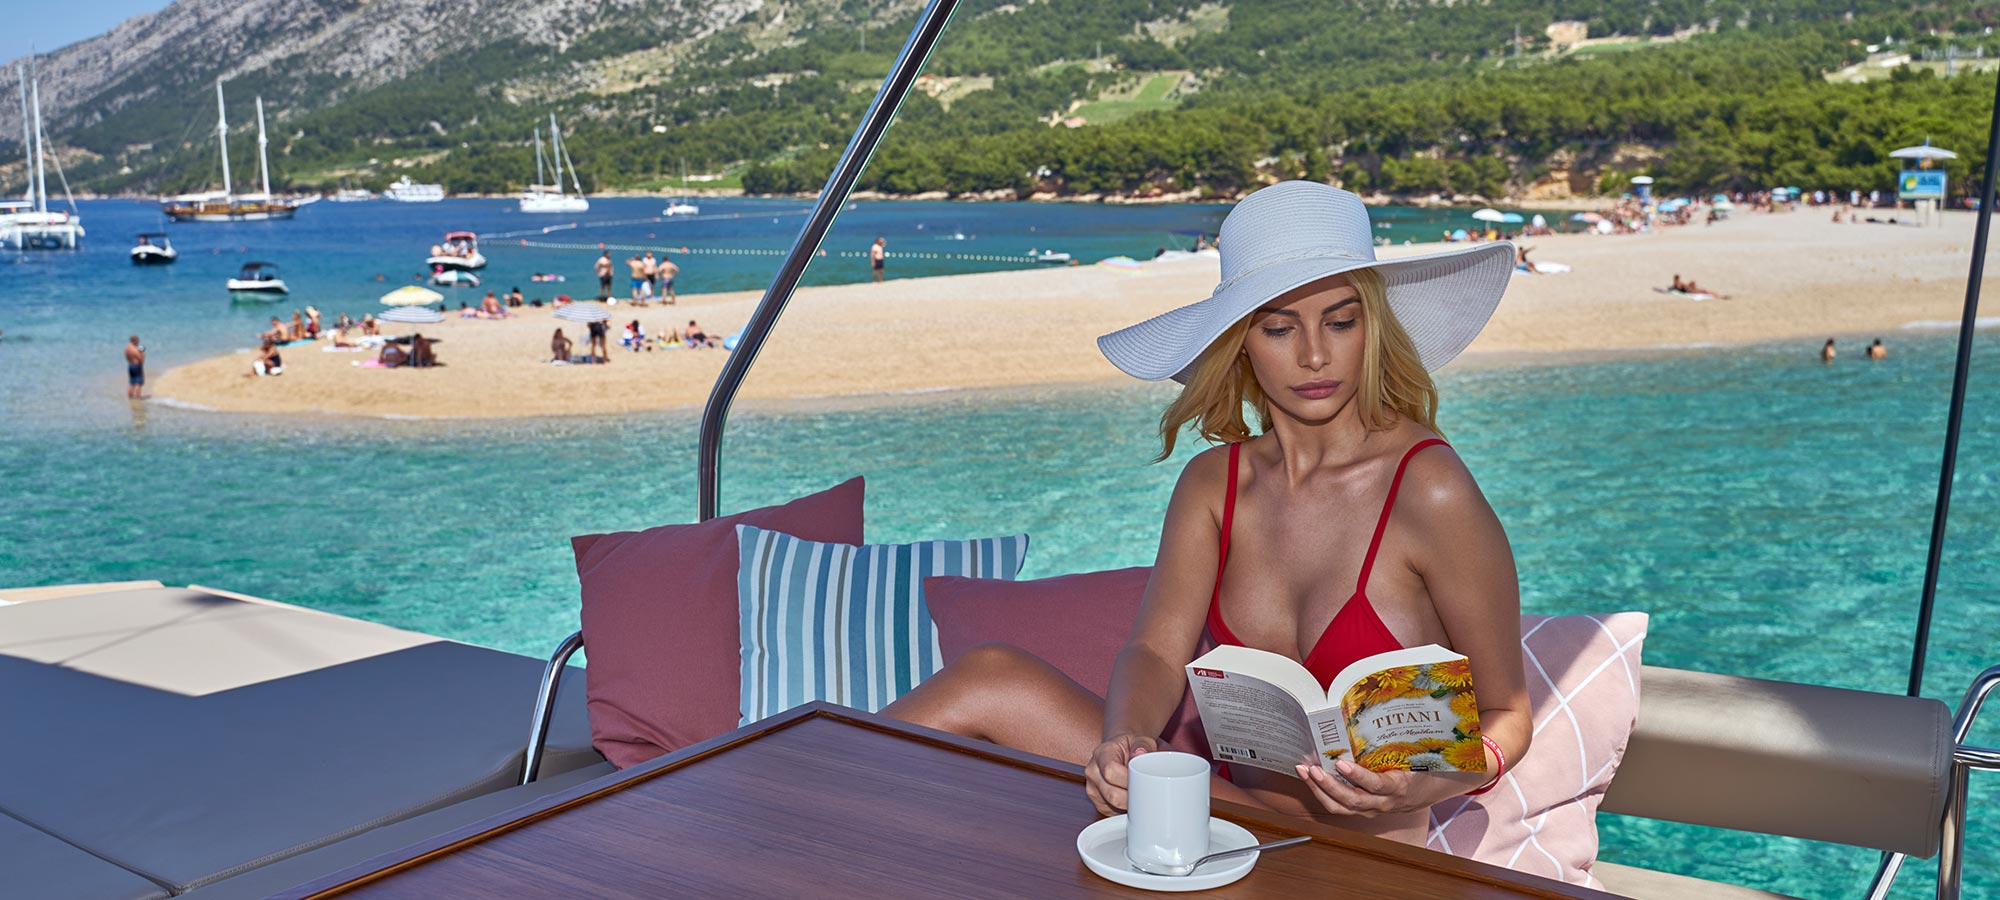 Top 4 books to read on your sailing vacation